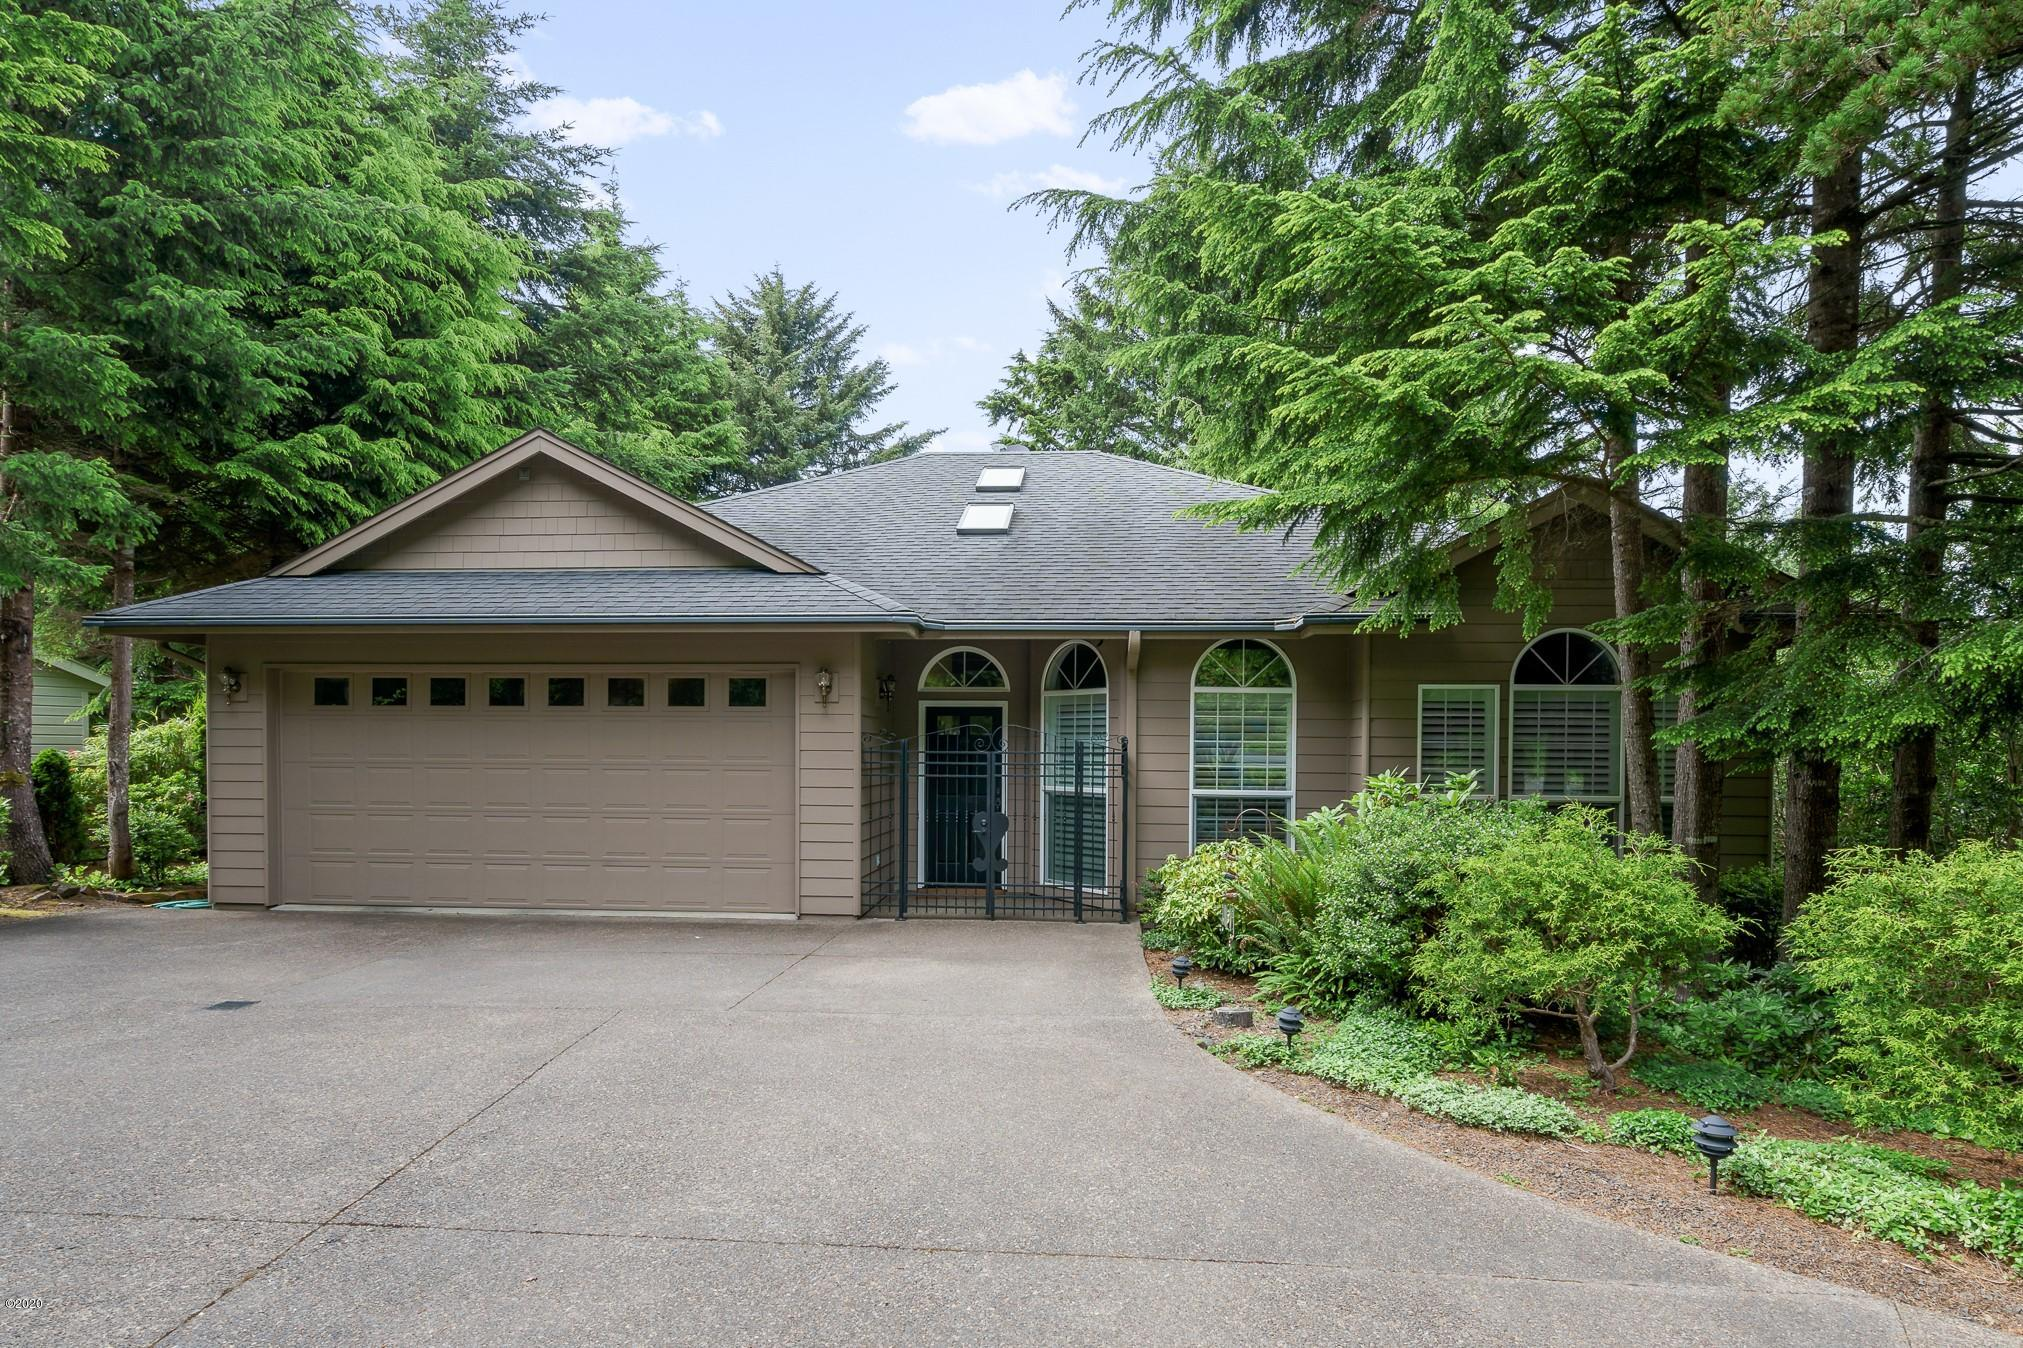 538 Fairway Dr, Gleneden Beach, OR 97388